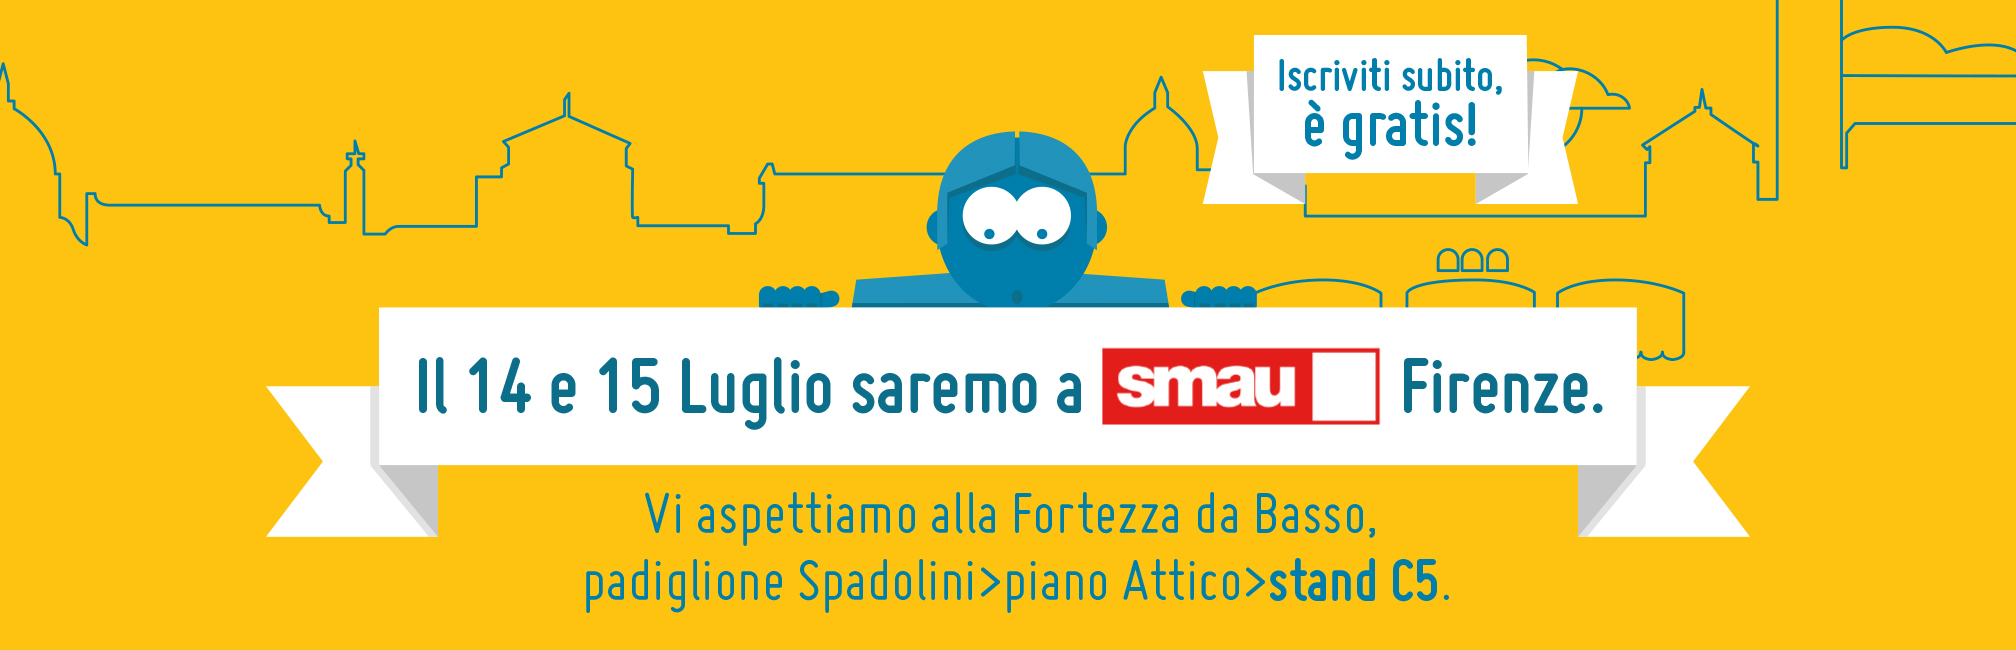 Smau Firenze 2015 Hosting Solutions